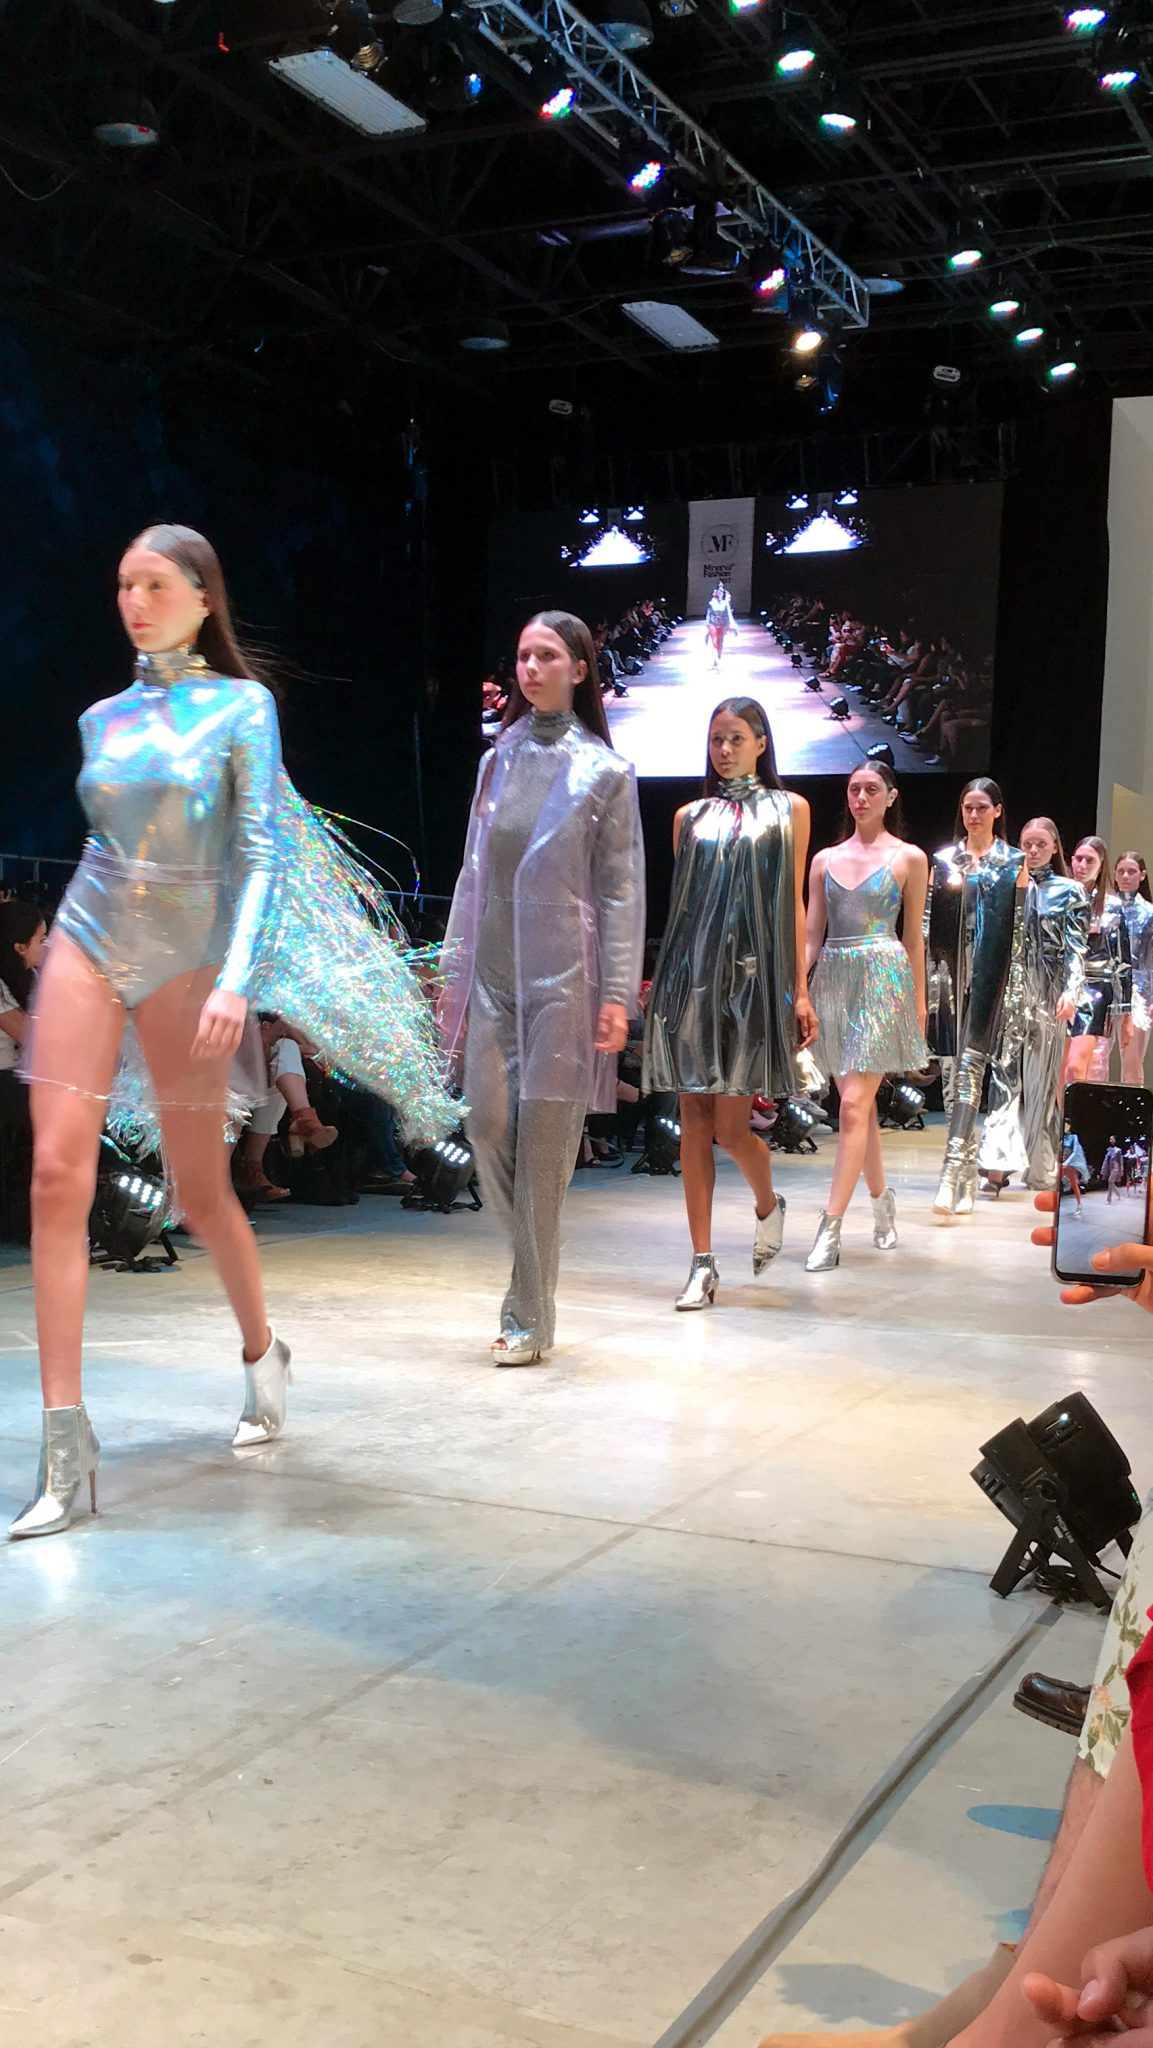 Model on the runway, wearing a silver jacket with tinsel, silver boots